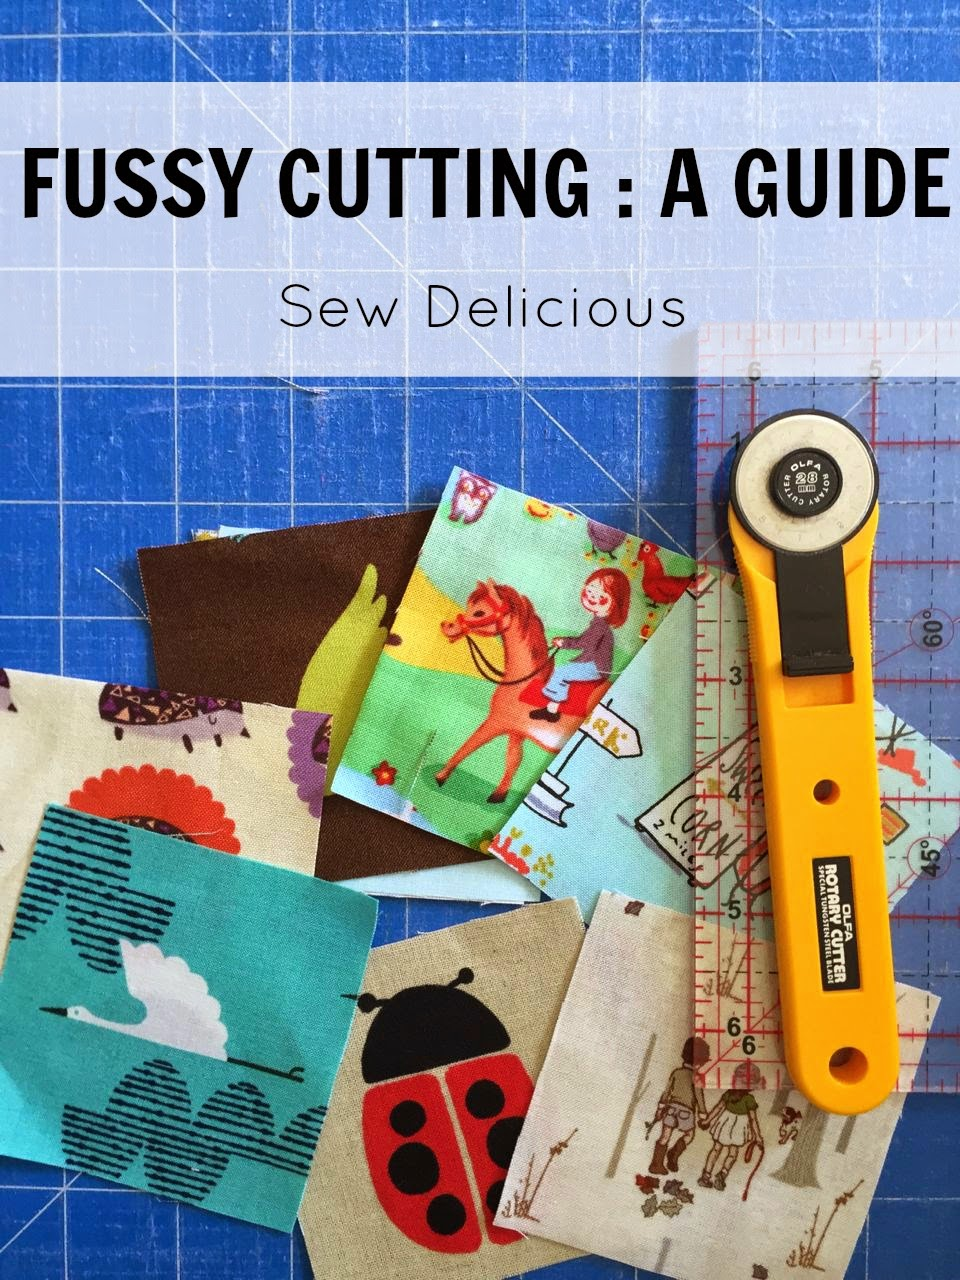 What Is Fussy Cutting Sew Delicious